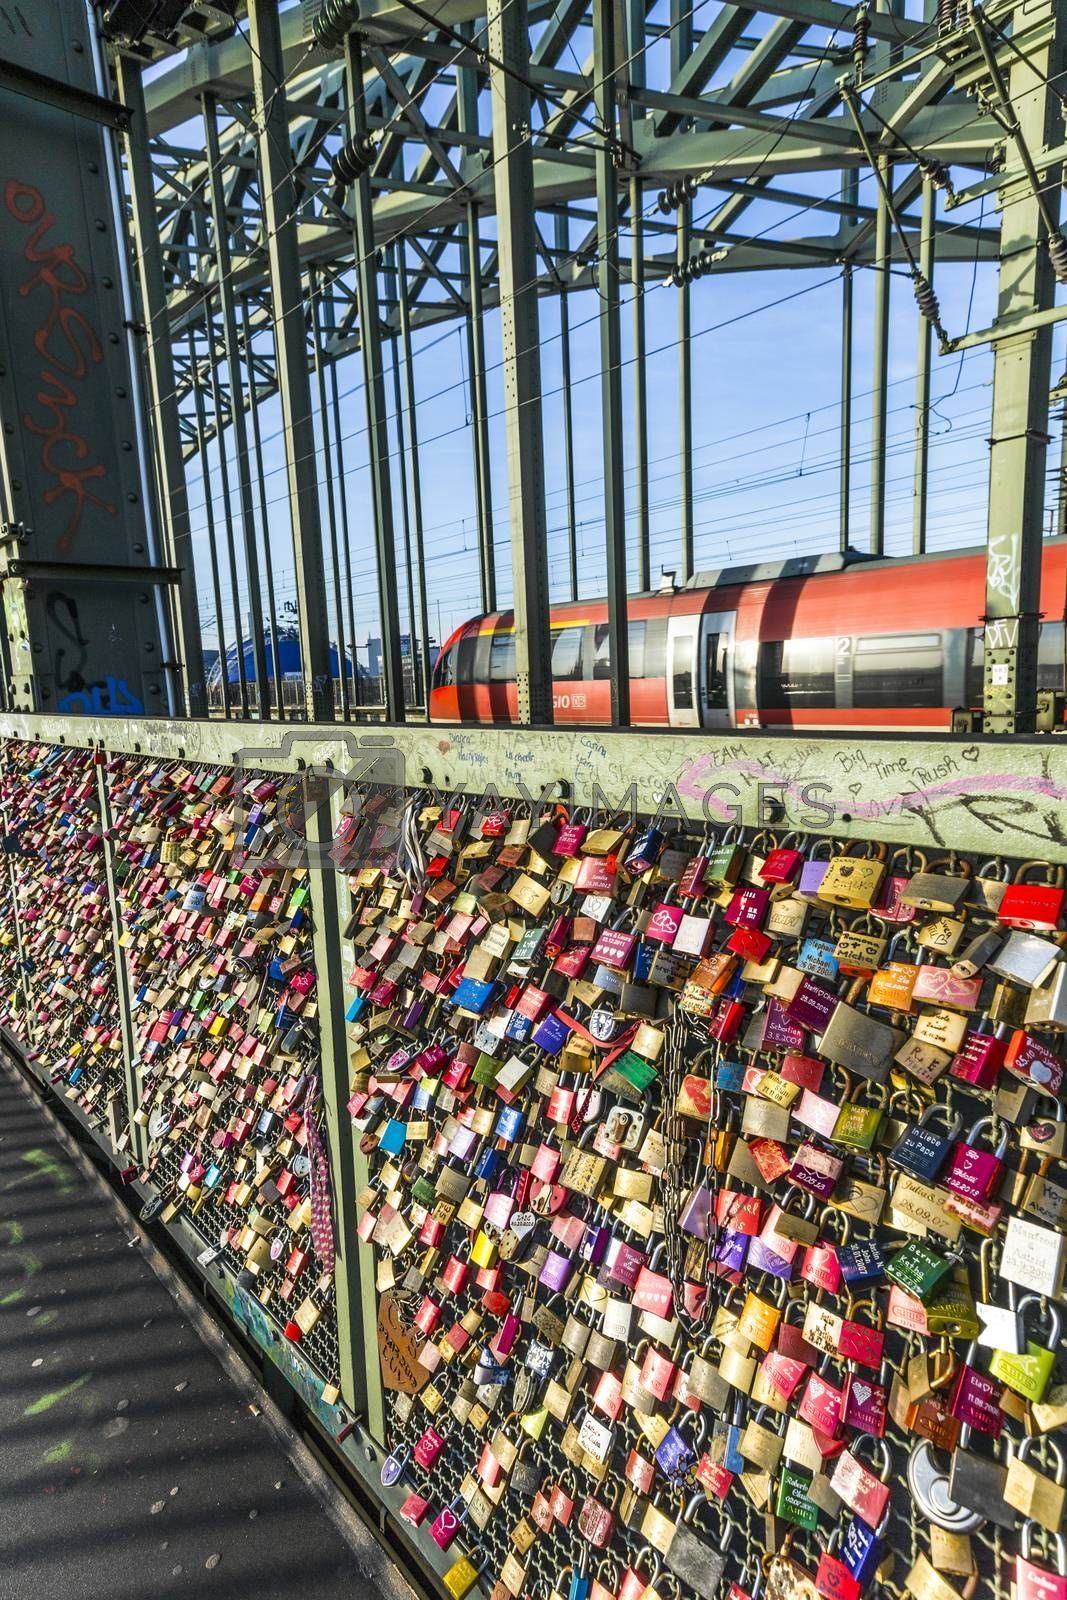 COLOGNE, GERMANY - DEC 3, 2013: lockers at the Hohenzollern bridge symbolize love for ever in Cologne, Germany. 40000 lockers of loving couples are on that heavily used railway bridge.